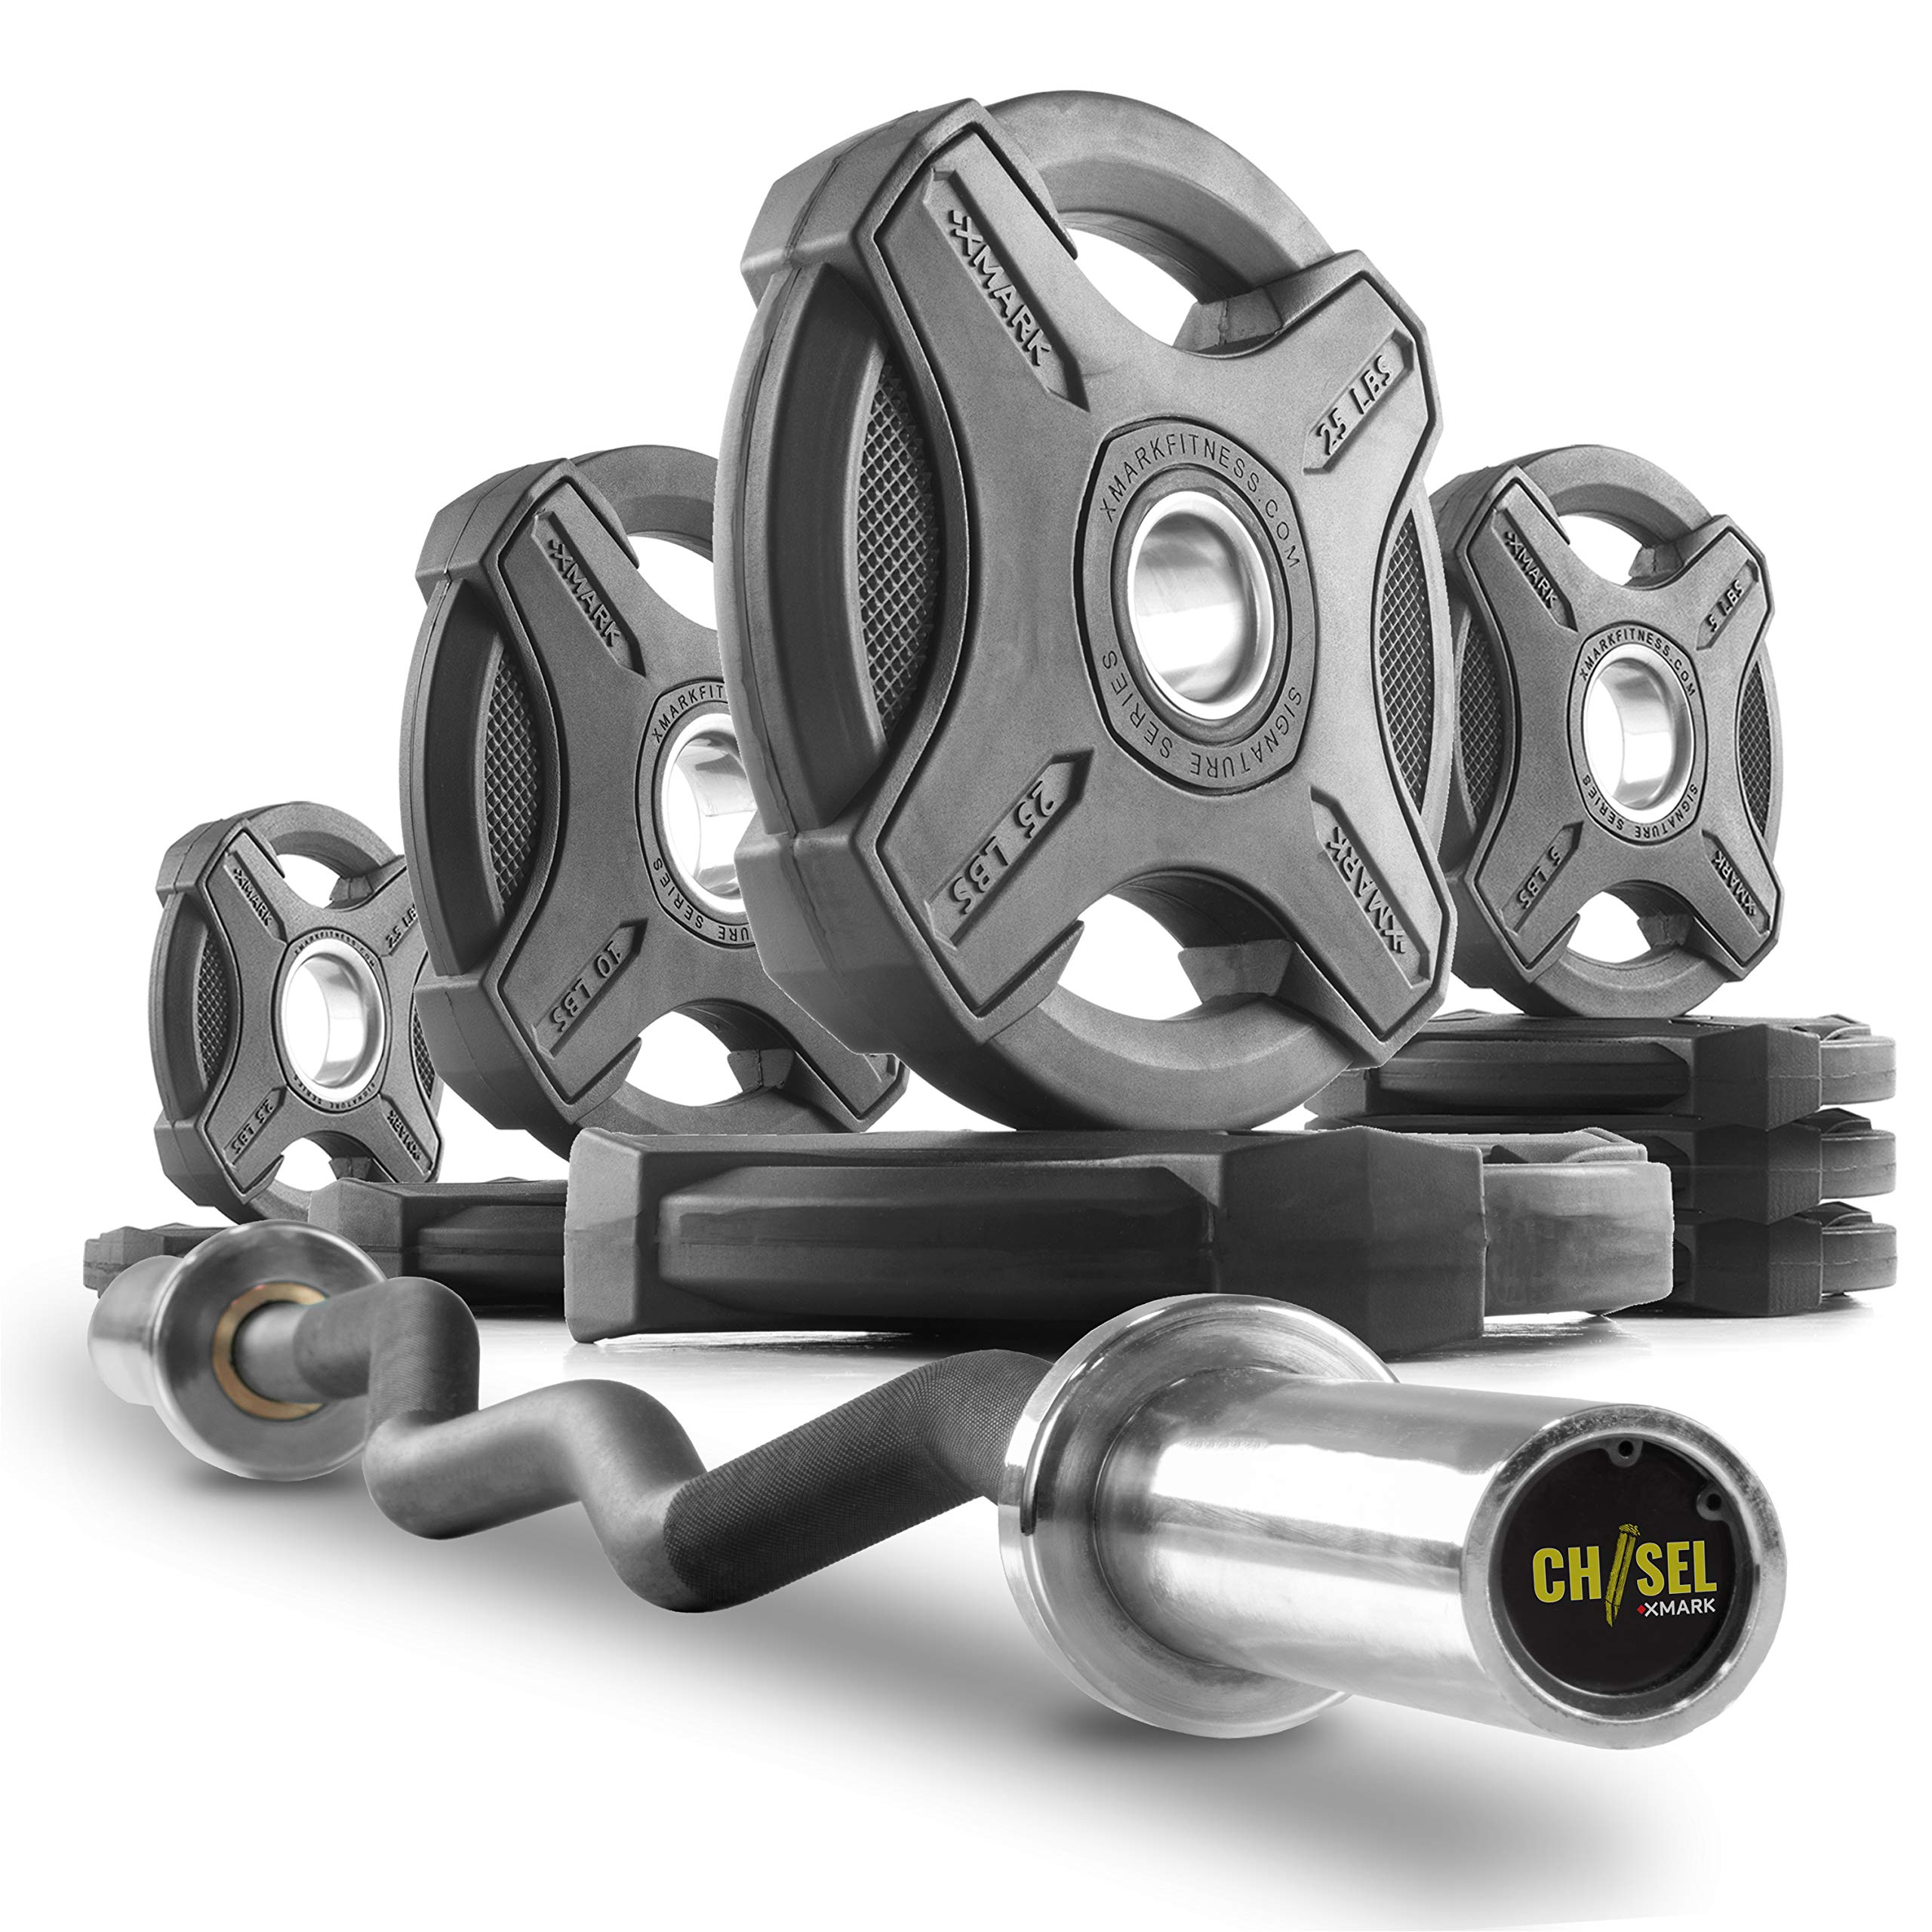 XMark Chisel Olympic Curl Bar with Signature 95 lb. Olympic Weight Plate Set, Notable Quality, Impressive Design, and Impeccable Craftsmanship